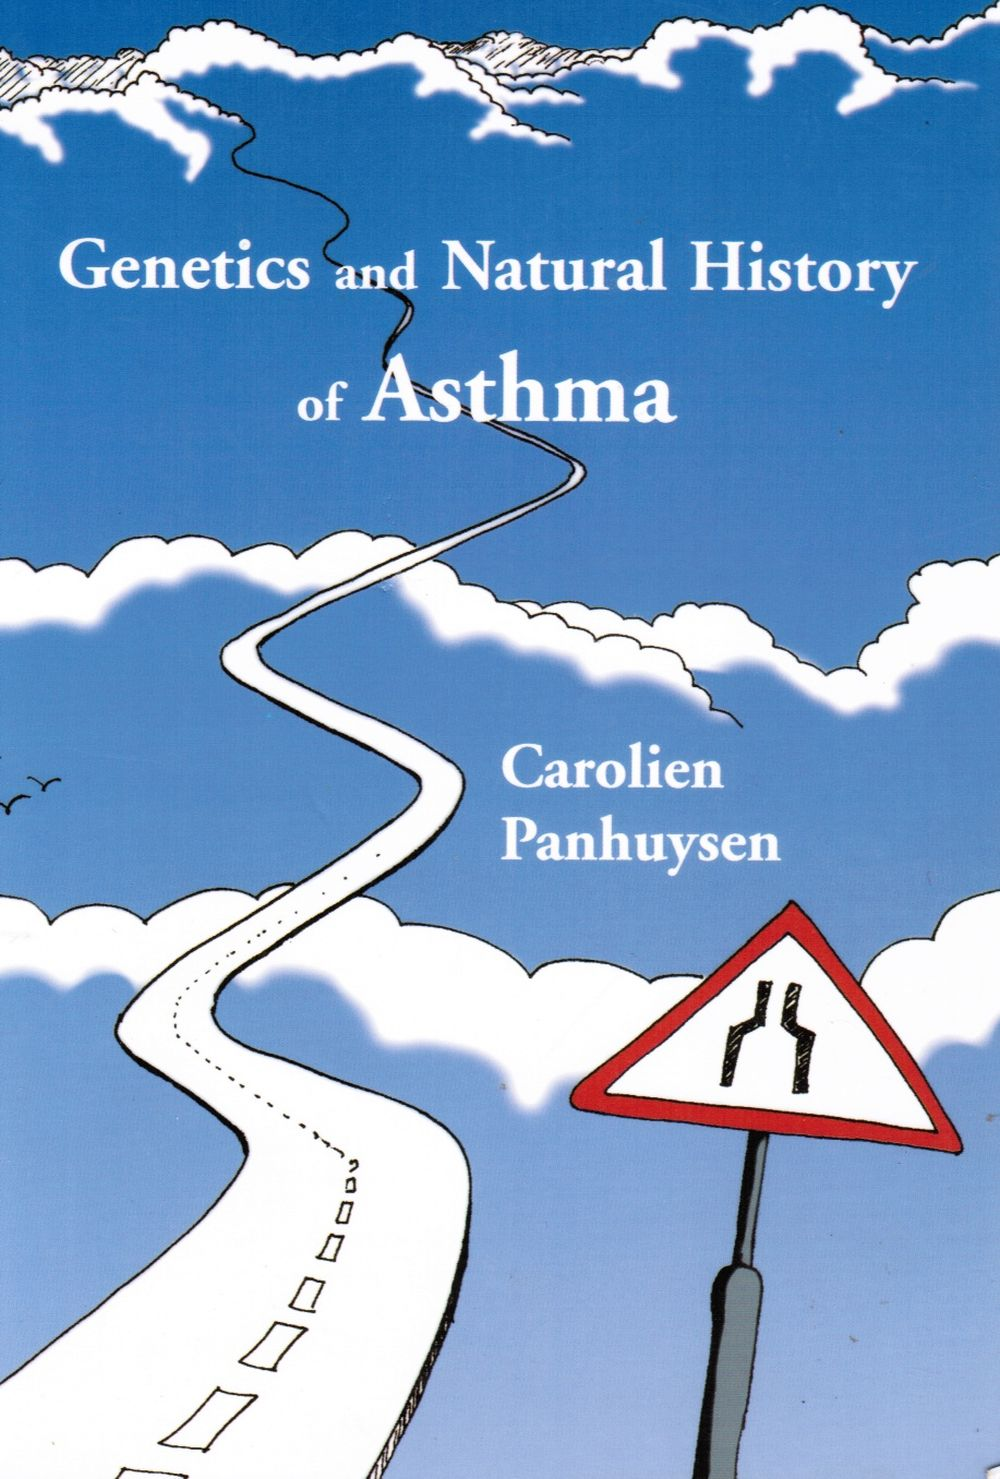 Image for Genetics and Natural History of Asthma